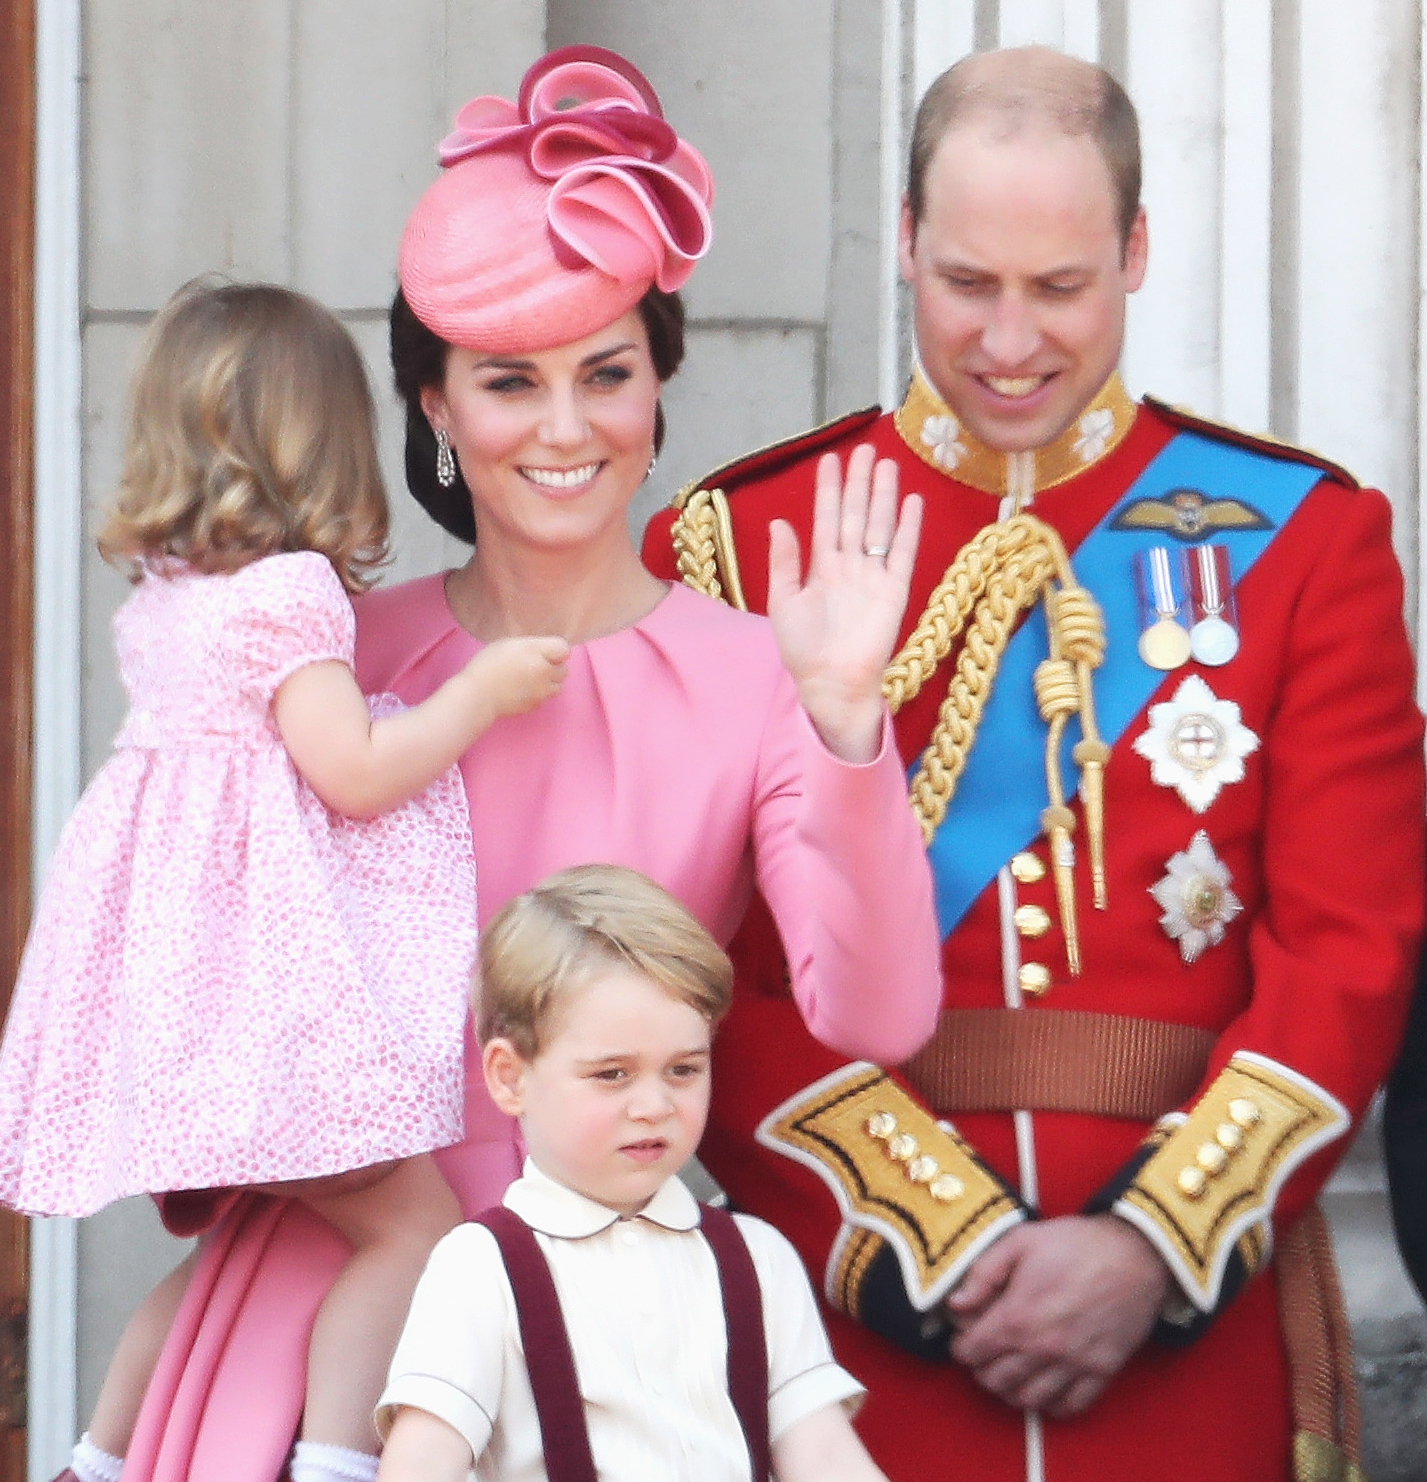 Kate Middleton and Prince William Attend Orientation for Prince George's New School